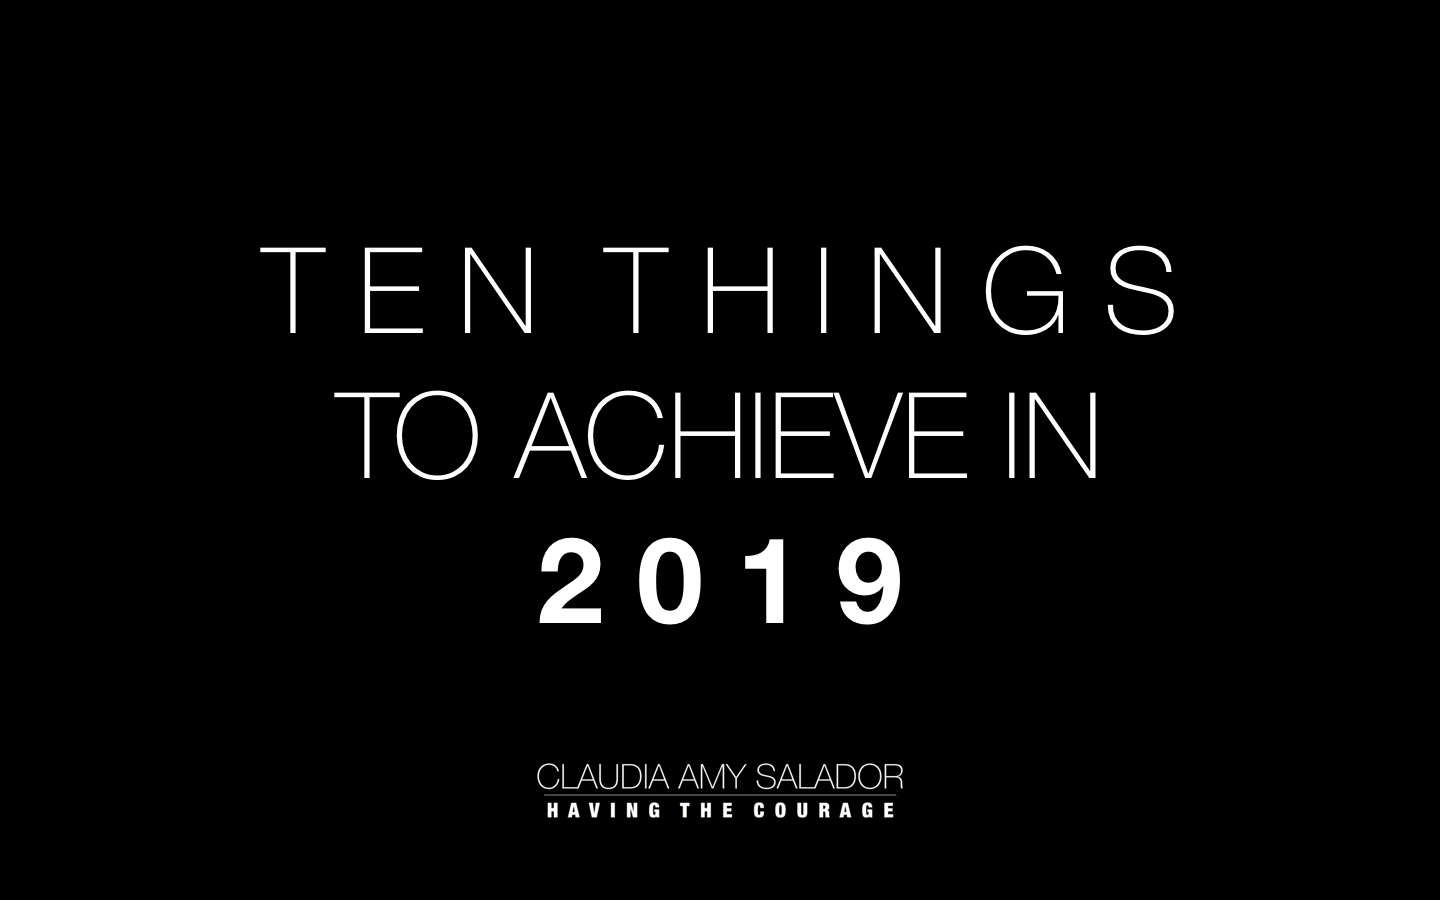 7/01/2019    'Ten Things To Achieve In 2019'